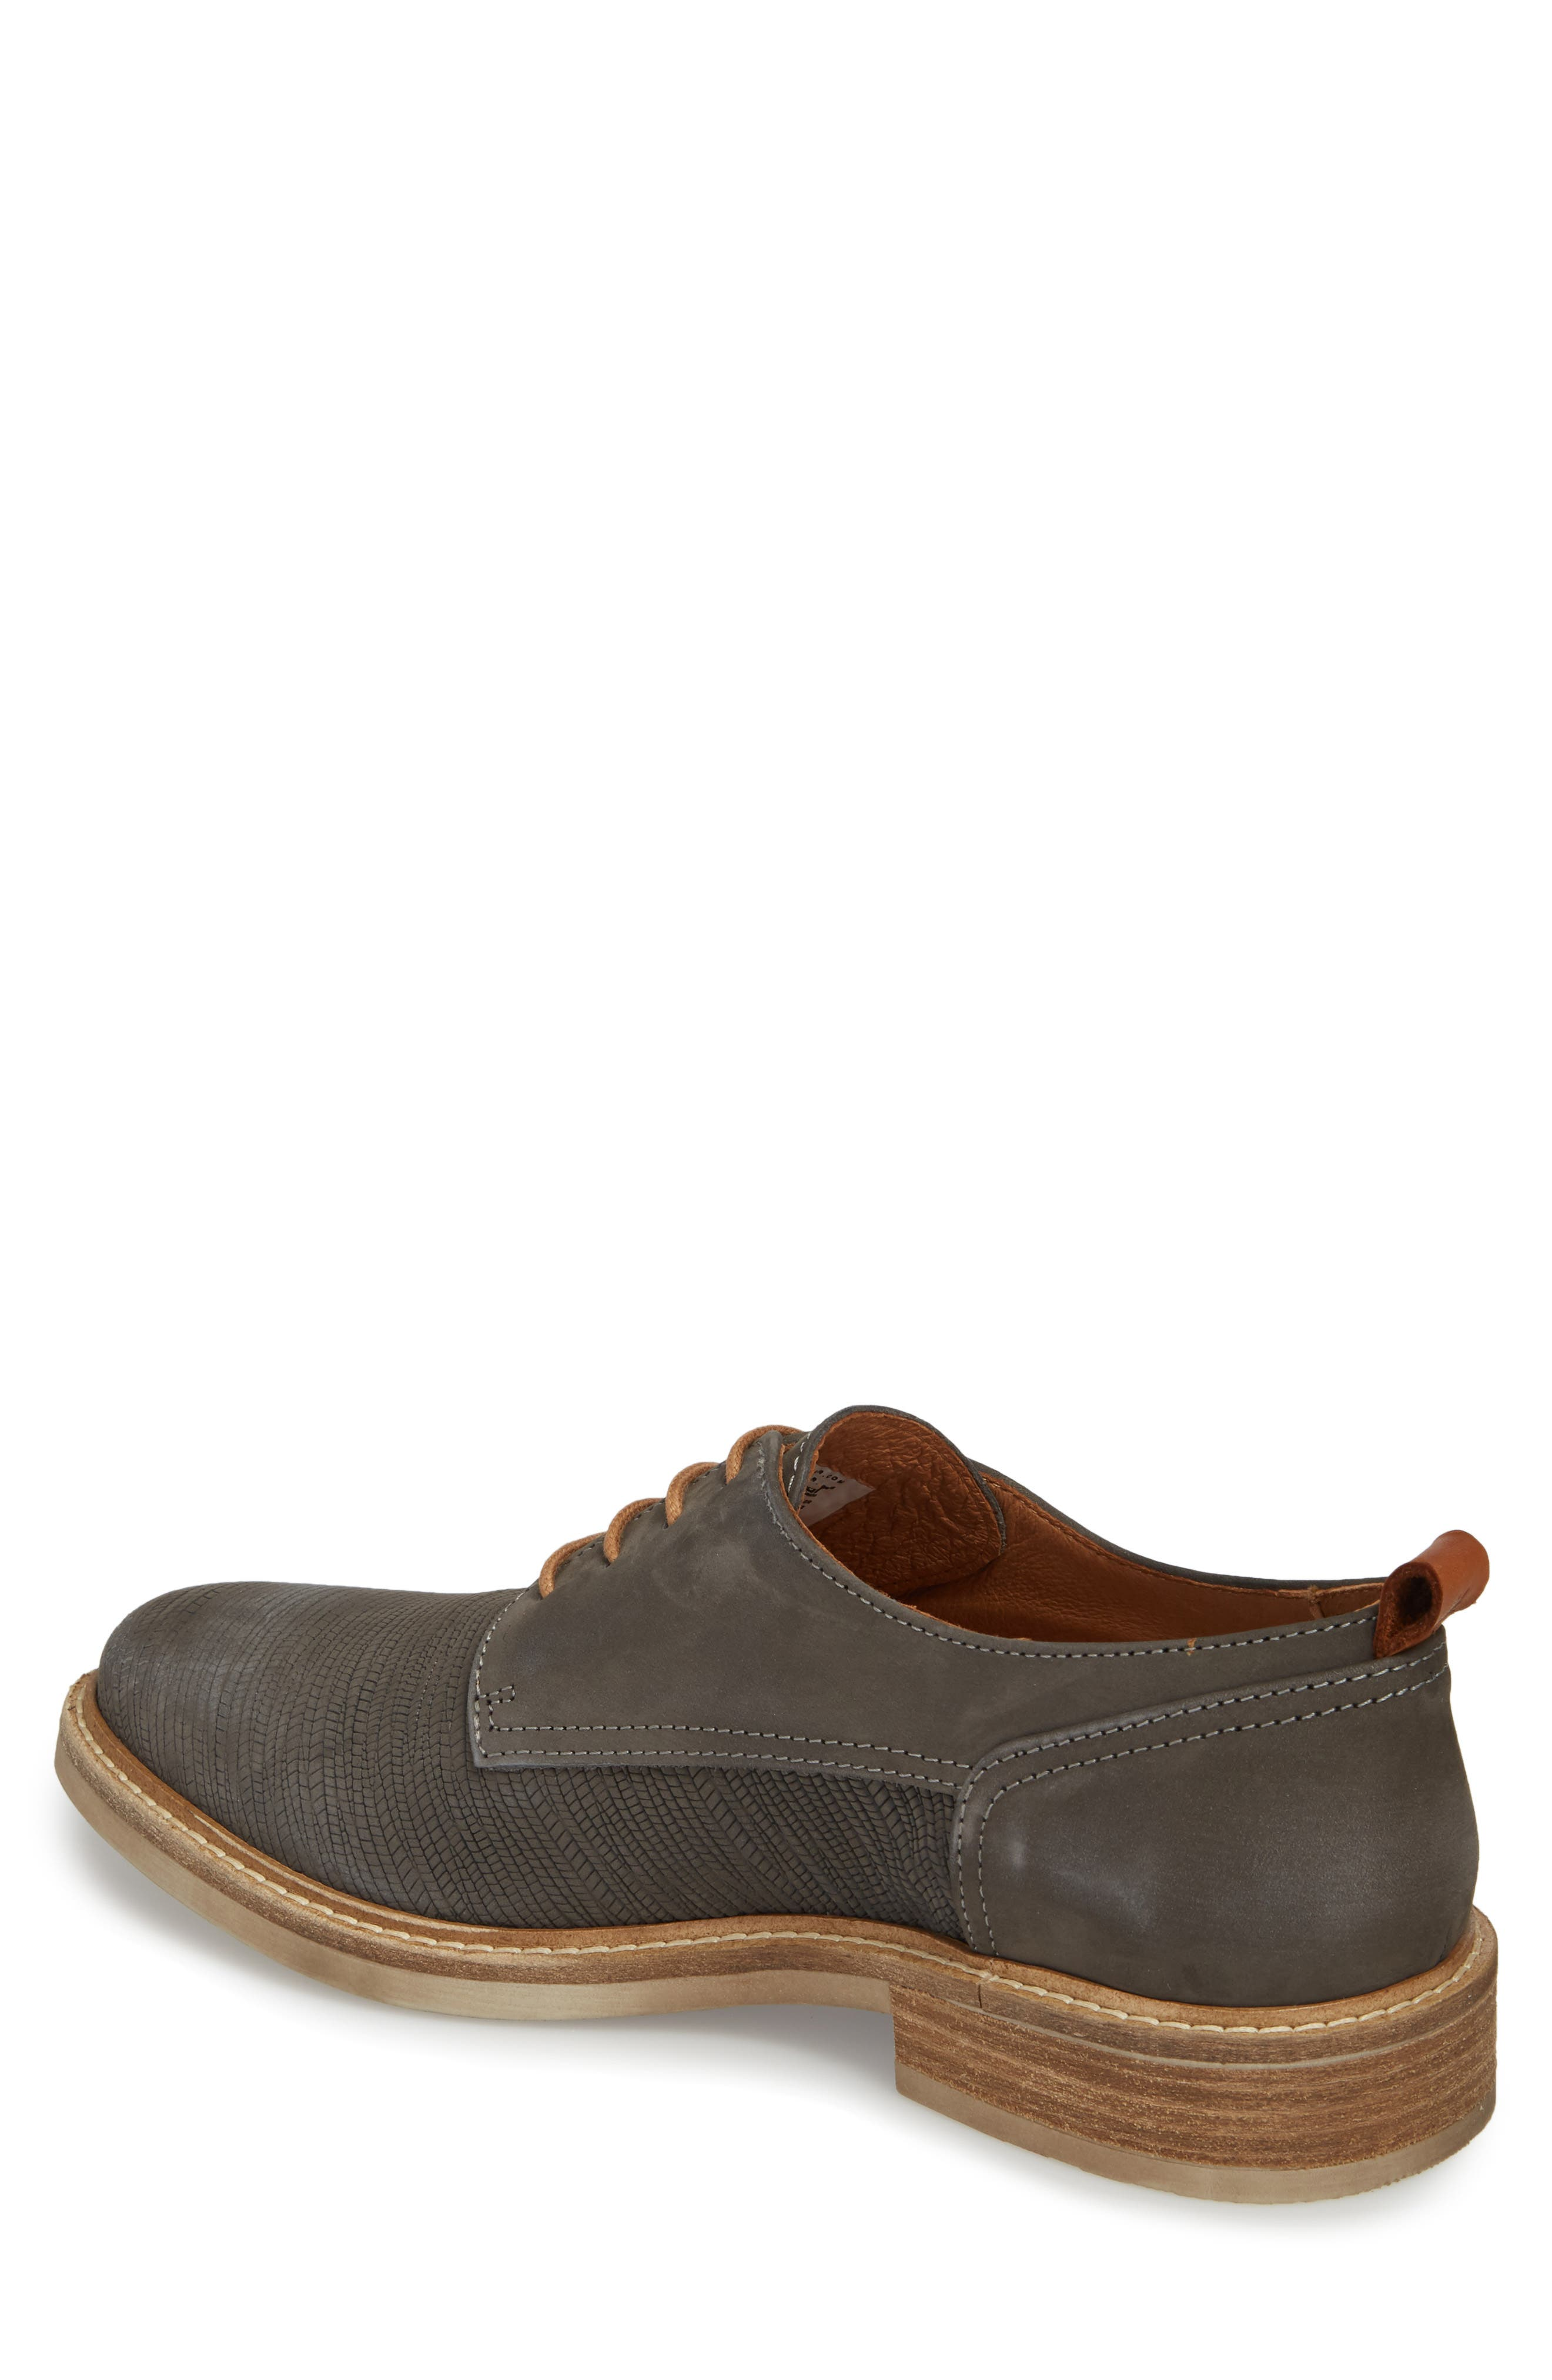 River Cafe Embossed Plain Toe Derby,                             Alternate thumbnail 2, color,                             ANTHRACITE